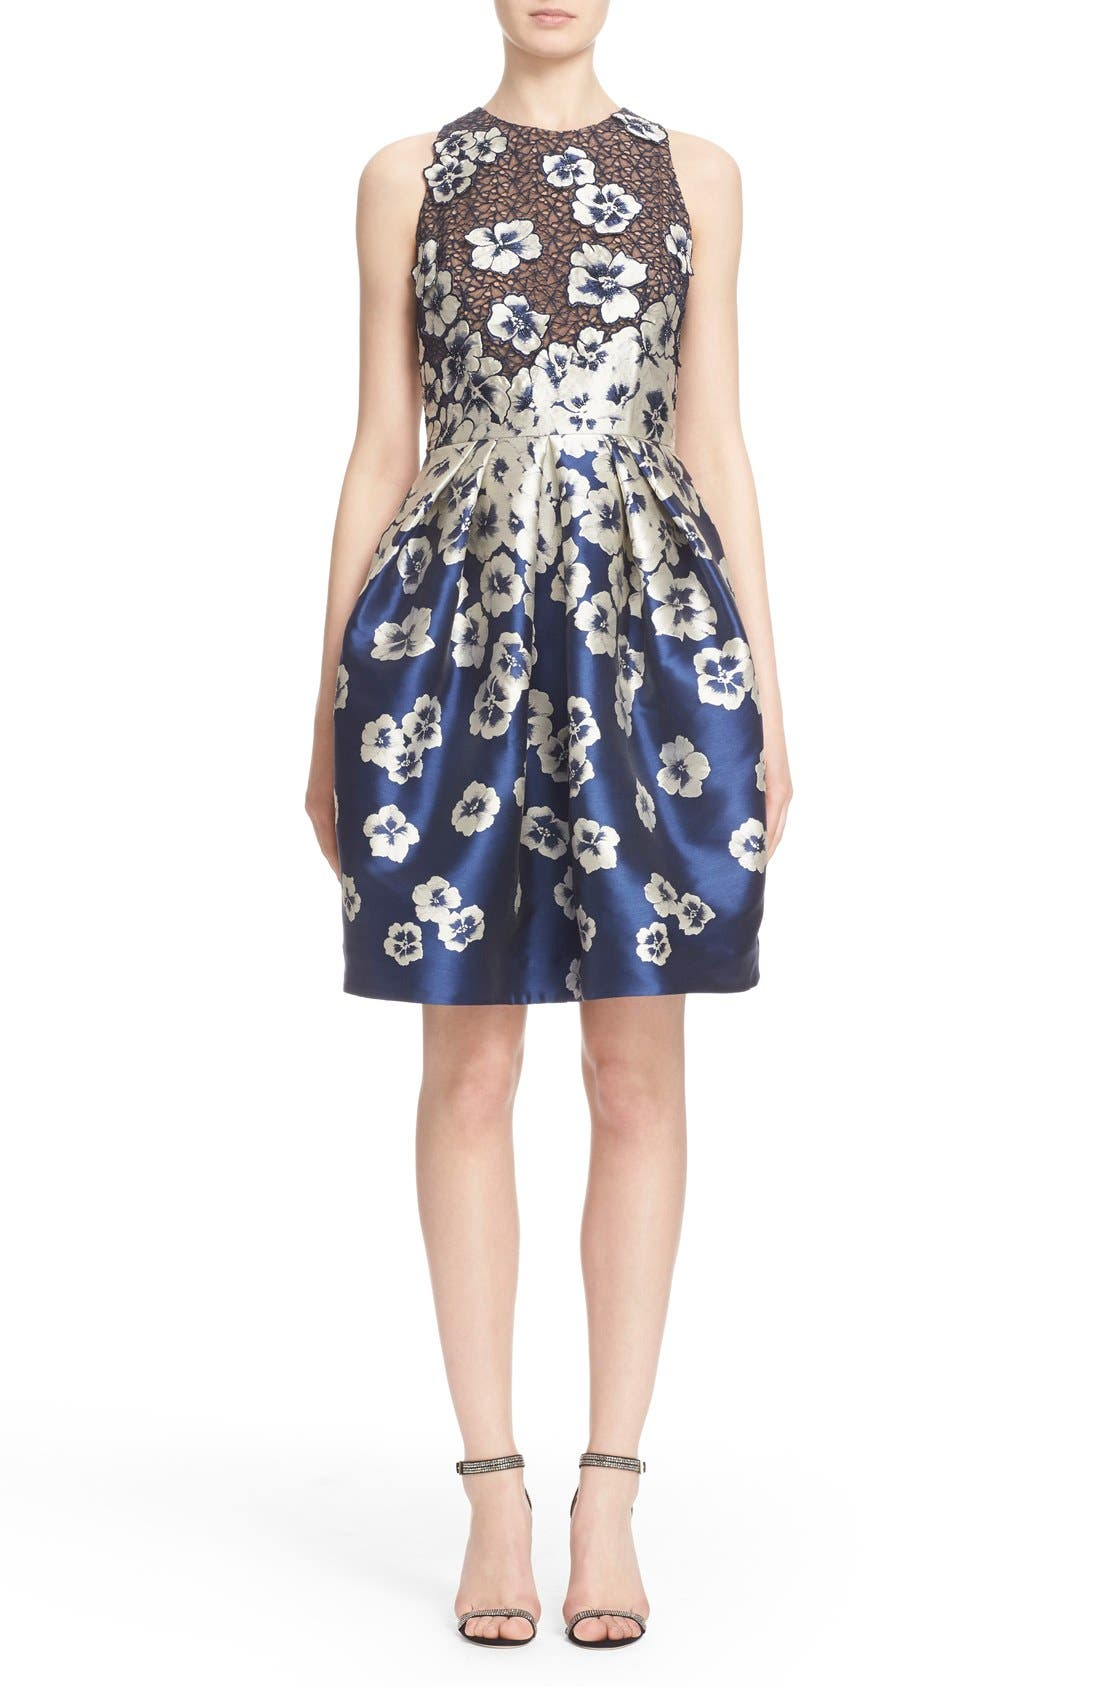 Carmen Marc Valvo Couture Floral Appliqué Cutaway Cocktail Dress